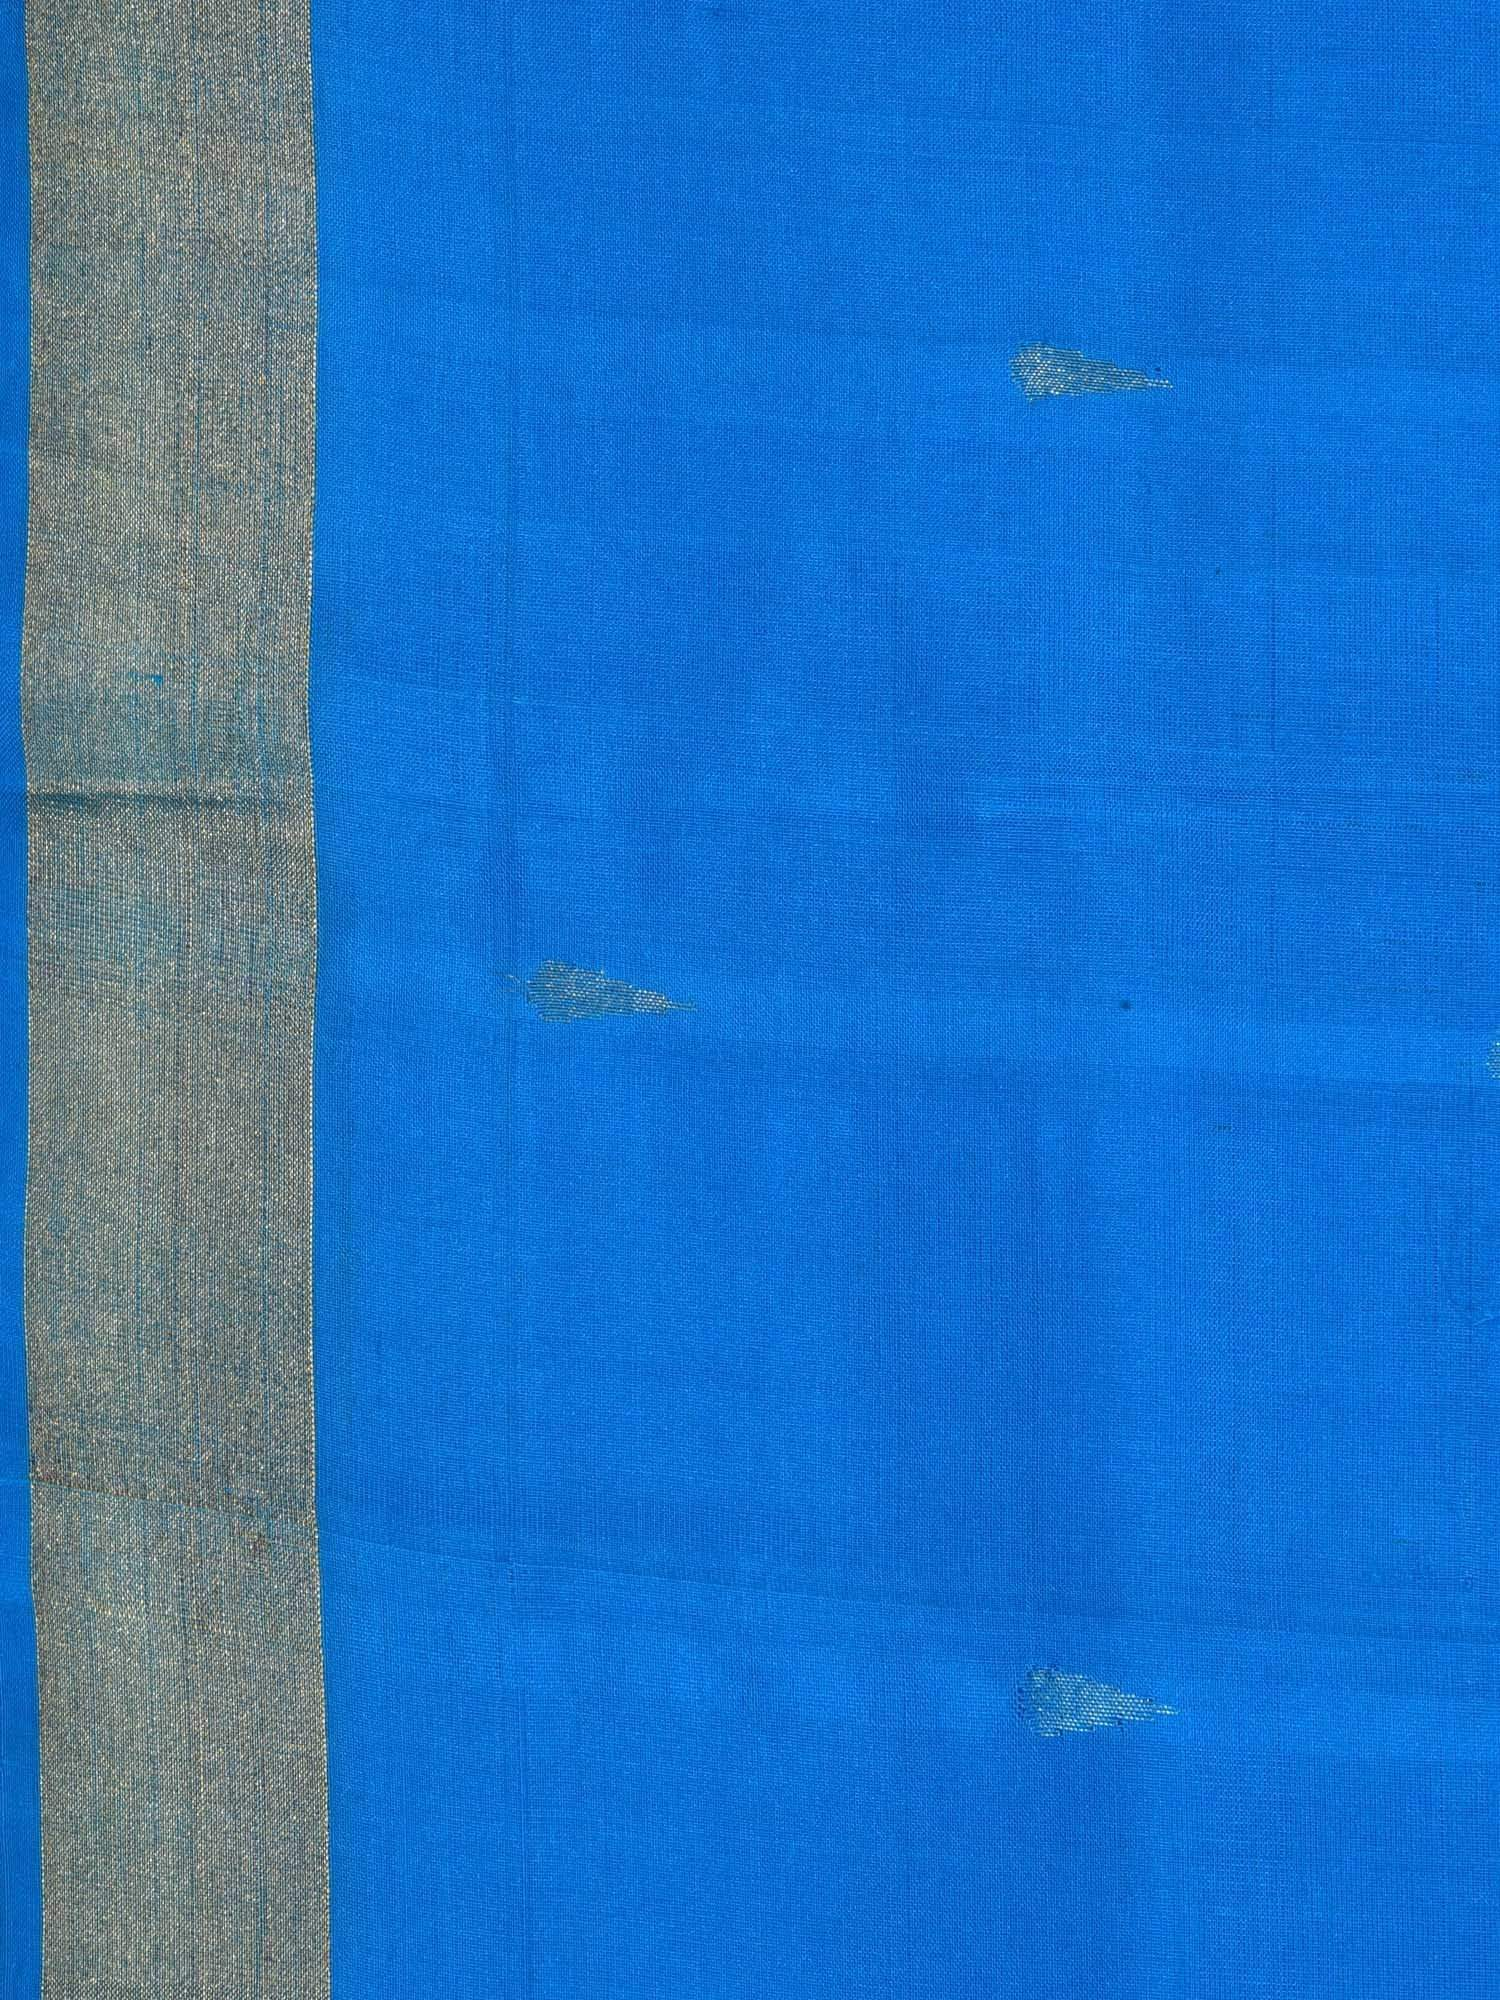 Blue Uppada Silk Handloom Saree with Karpur Pallu Design U1535